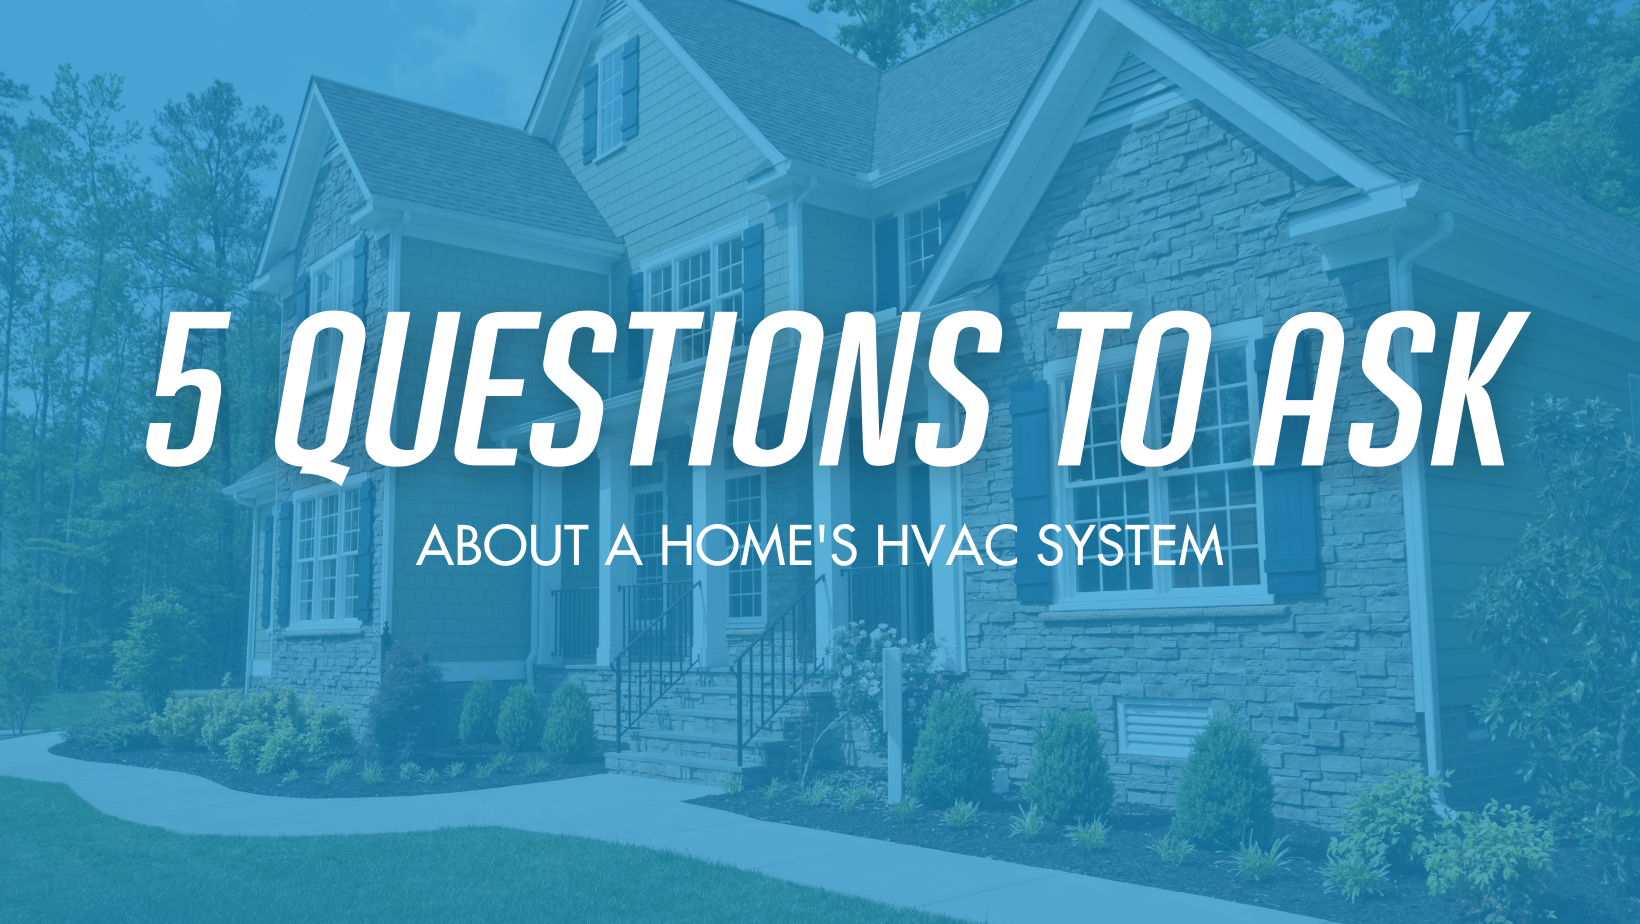 Ease Air Gives 5 Questions to Ask About A Home's HVAC Unit Before Purchasing A New Home